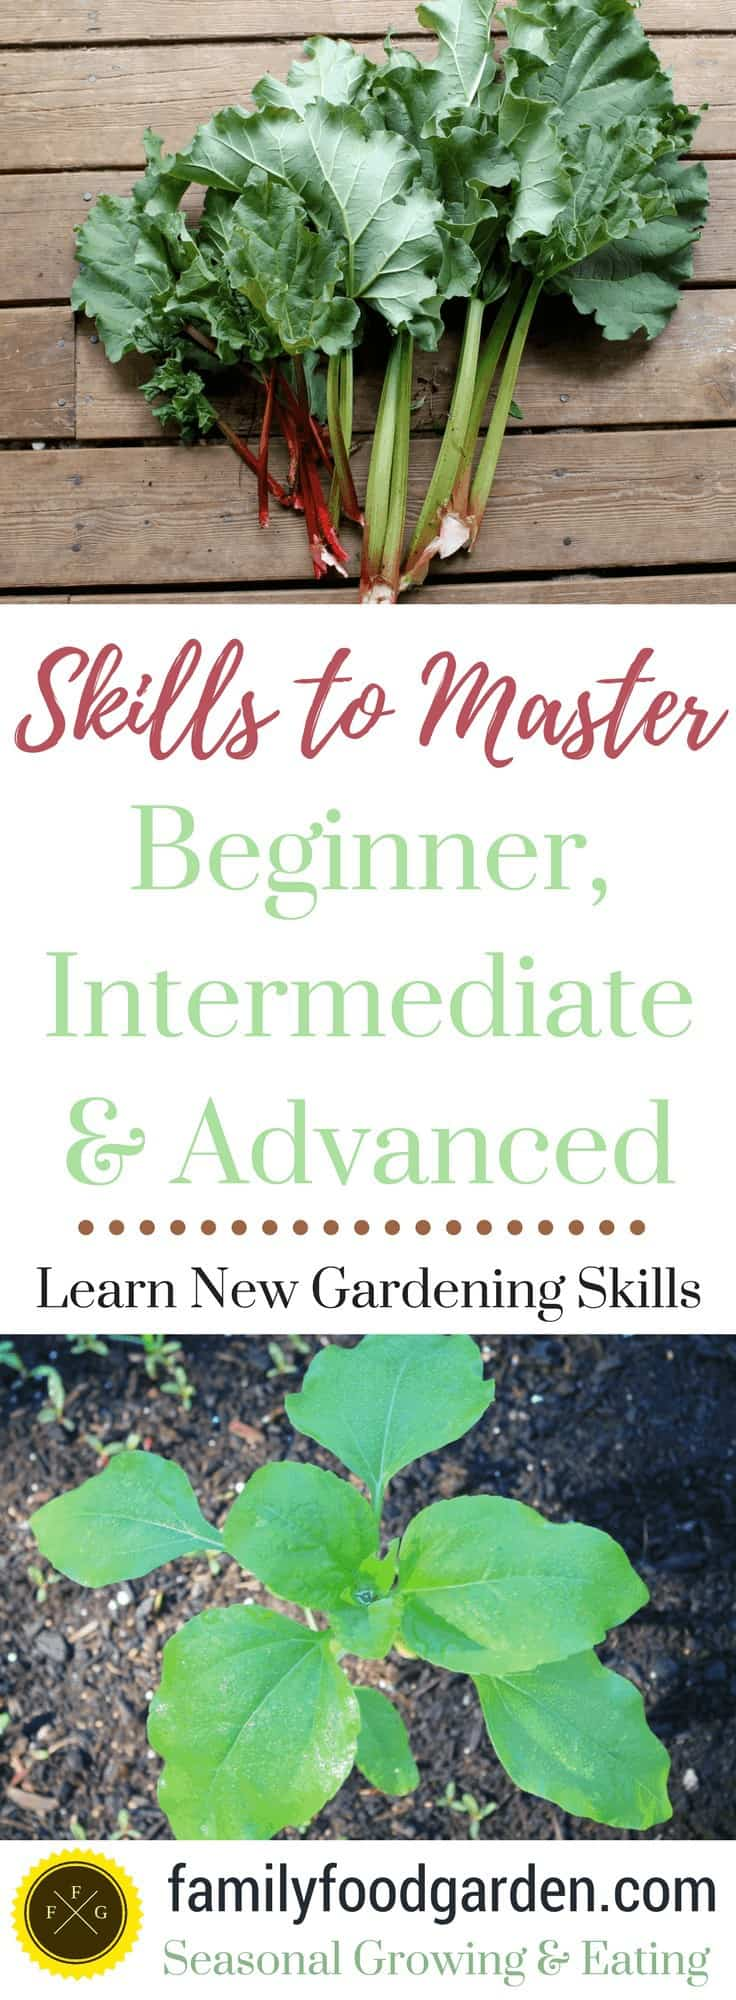 Become a better gardener by expanding your skills